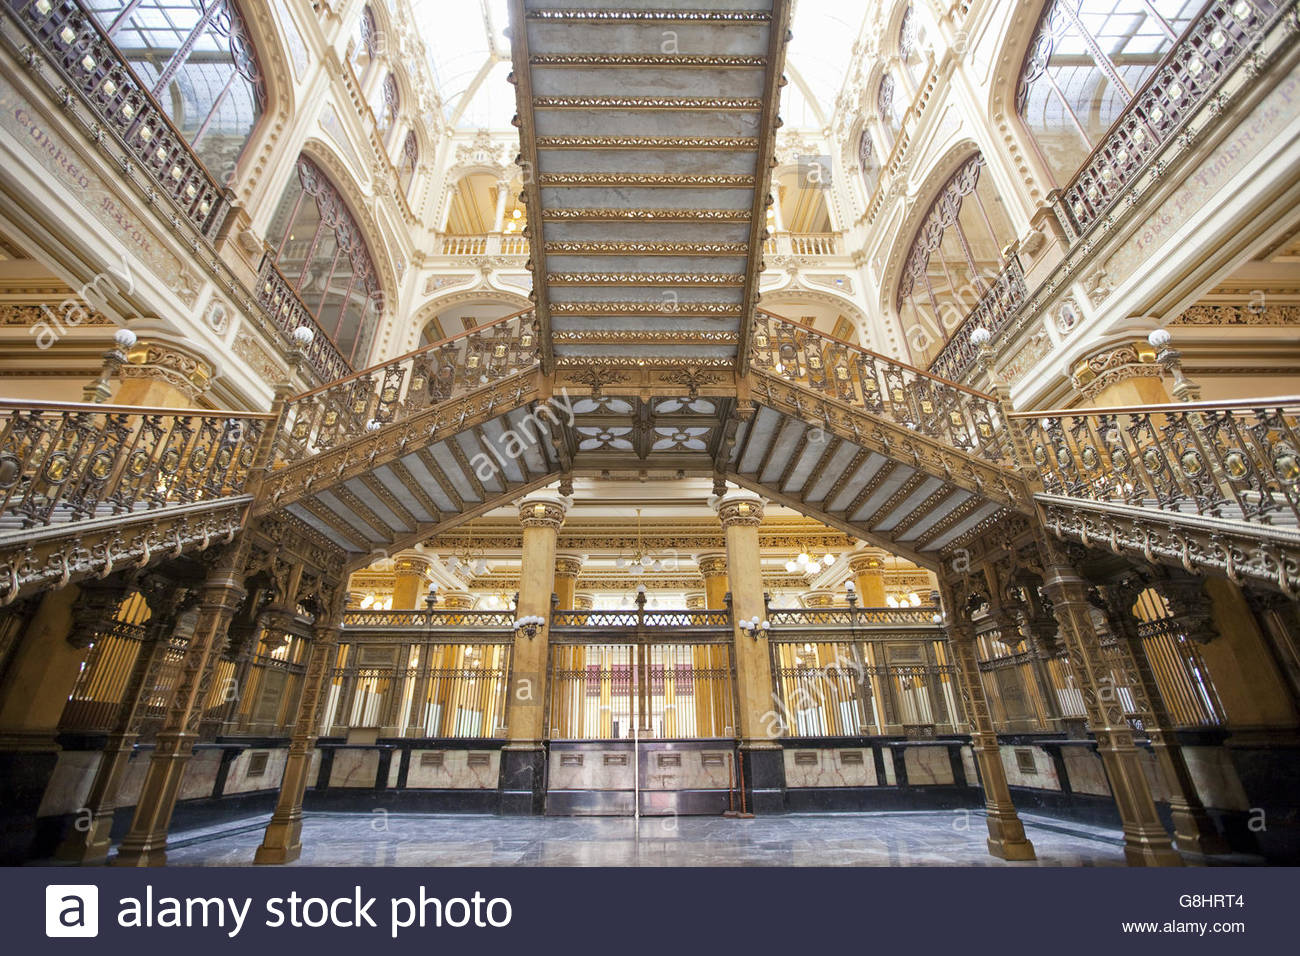 The Palacio de Correos de Mexico (Postal Palace of Mexico City) Mexico City, Mexico - Stock Image